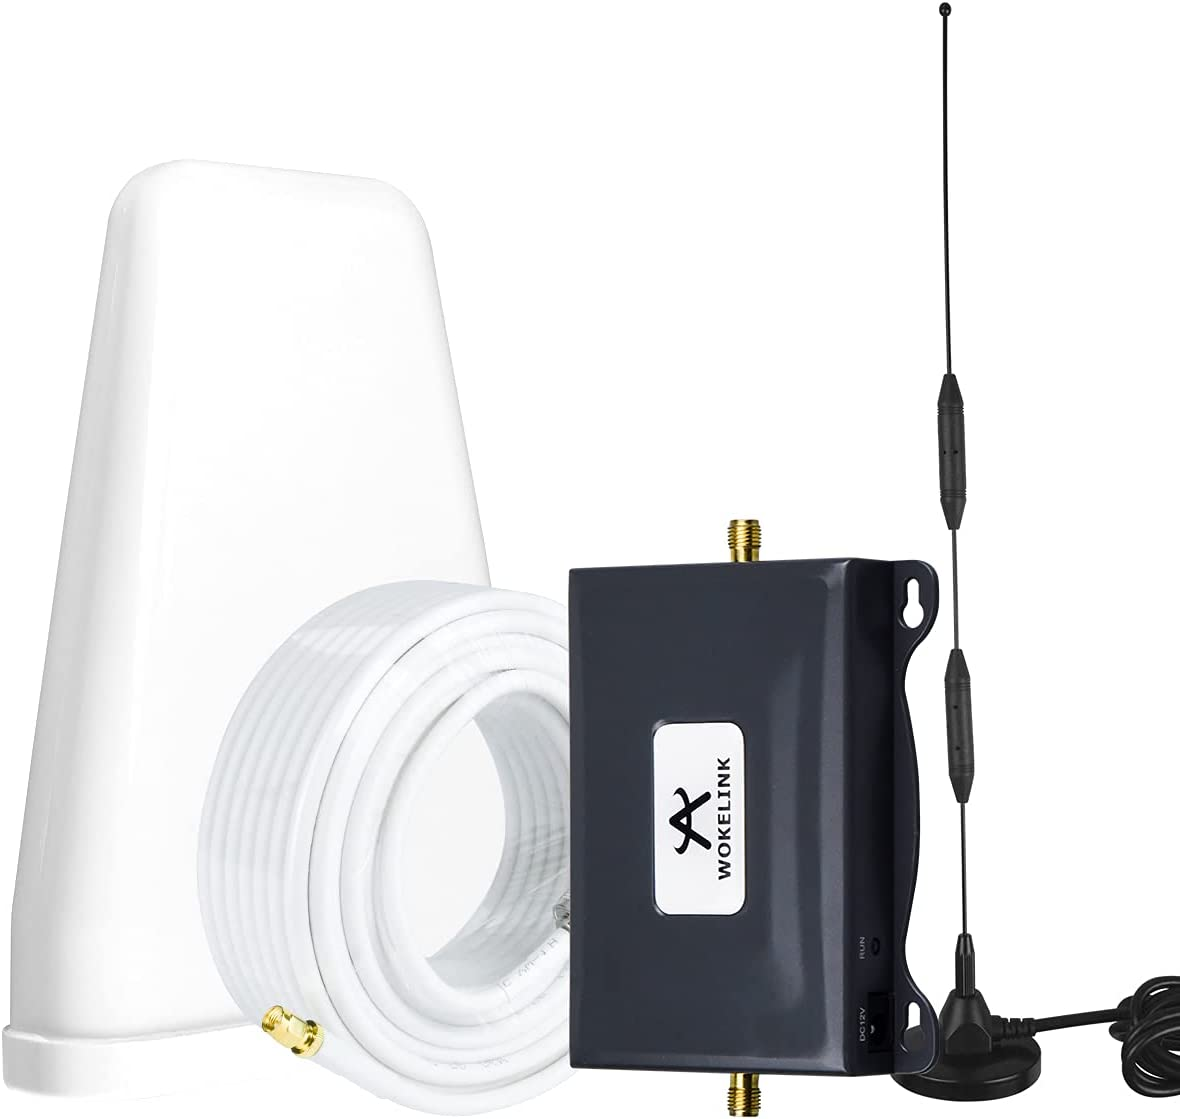 ATT Signal Booster AT&T Cell Phone Signal Booster 4G LTE T-Mobile Cricket US Cellular Band12/17 Cell Signal Booster AT&T Cell Phone Booster ATT Cell Extender Signal Amplifier Boost Voice+Data for Home